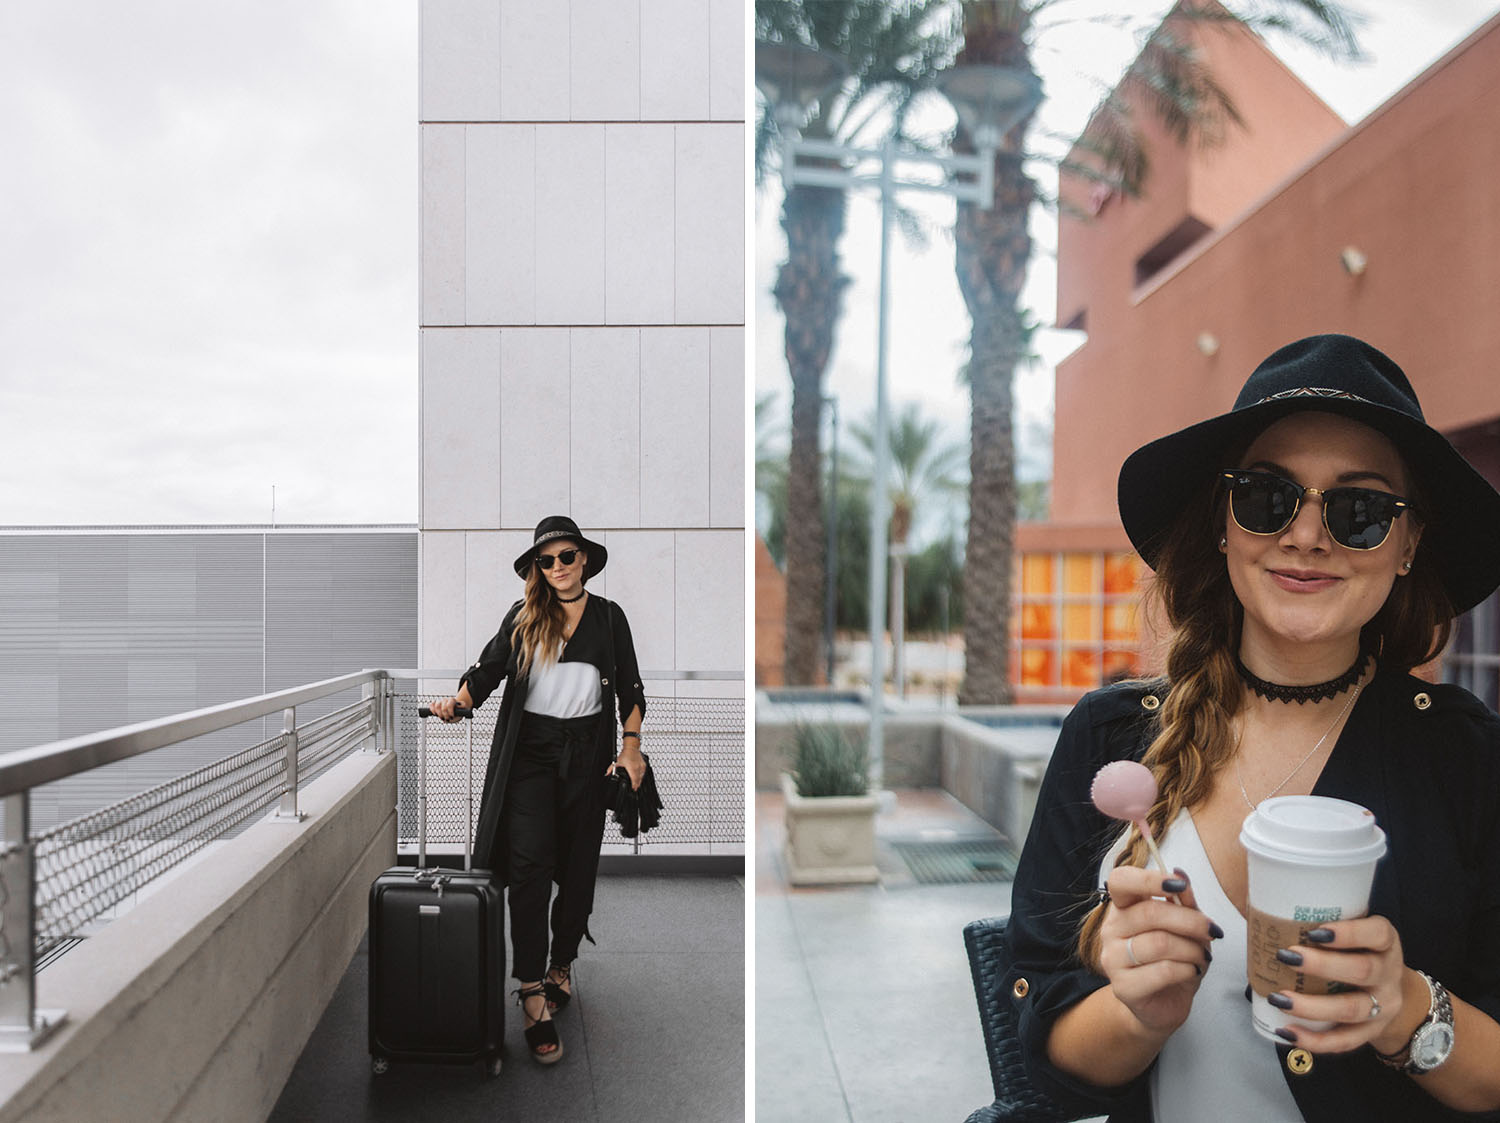 Travel in Style Outfit Idea: Hat, Sunglasses & Black Cardigan